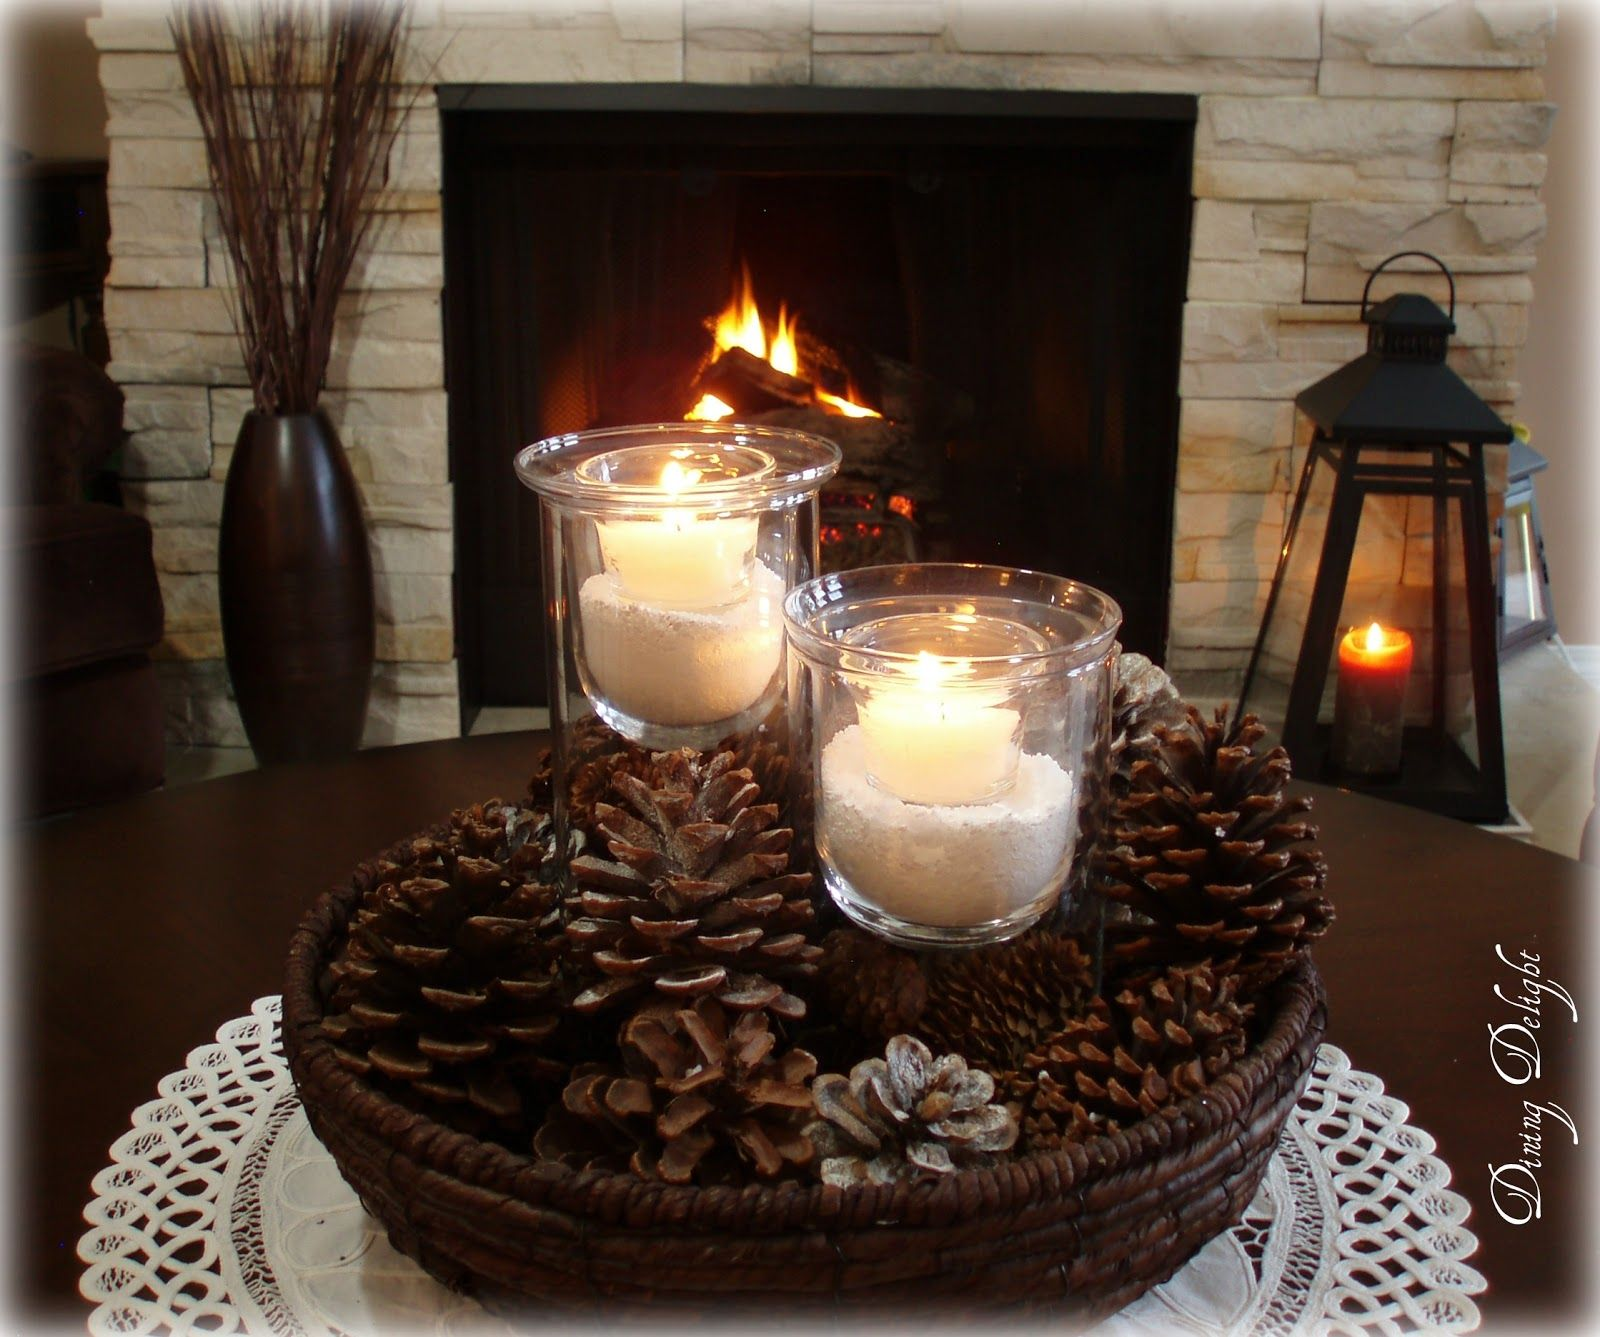 Dining Room Centerpiece Ideas Candles Part - 44: Dining Room Centerpiece